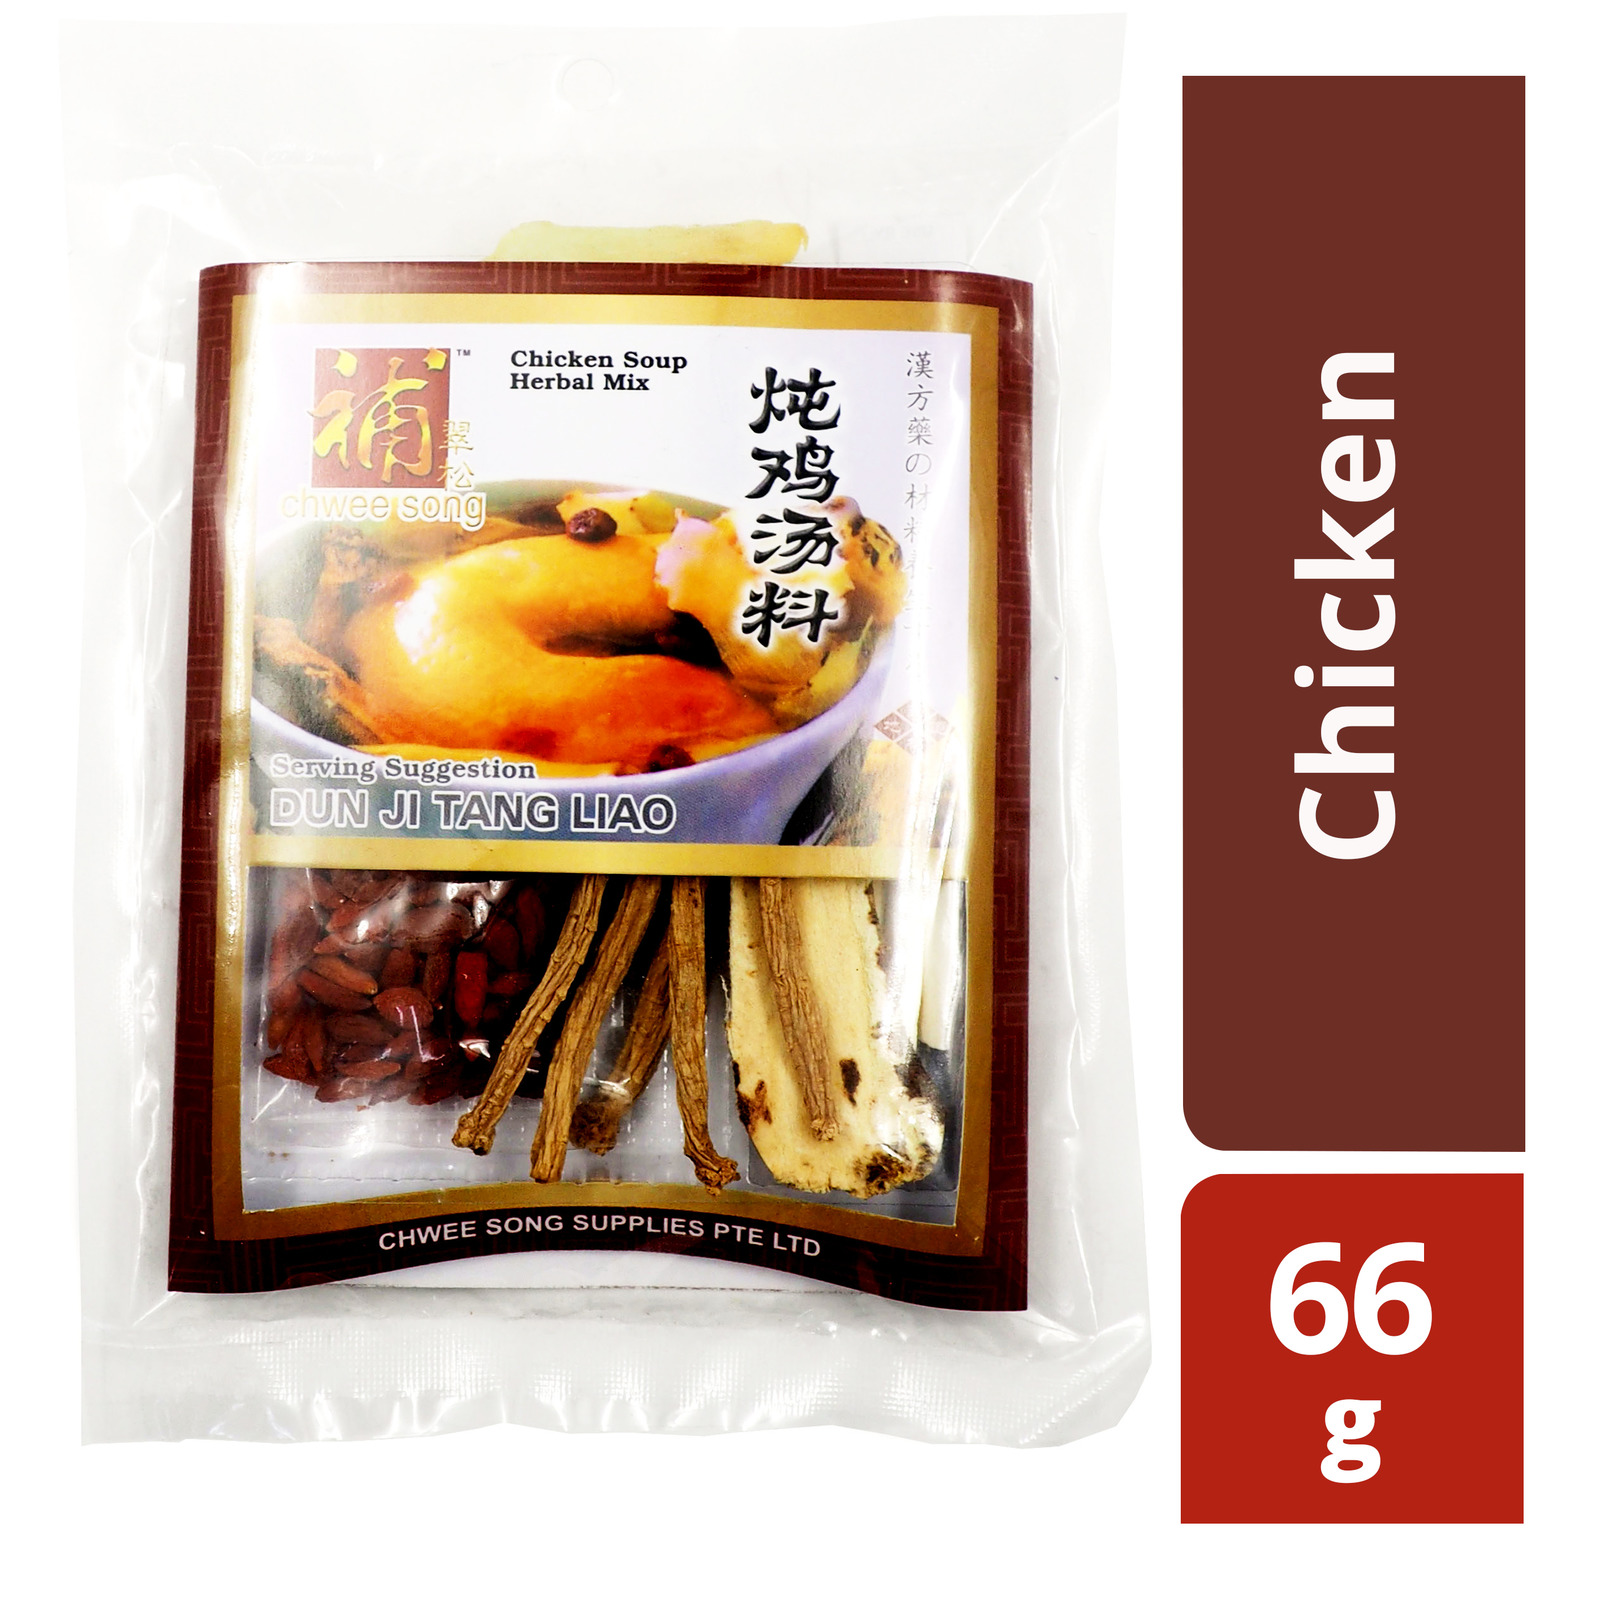 Chwee Song Herbal Soup Mix - Chicken